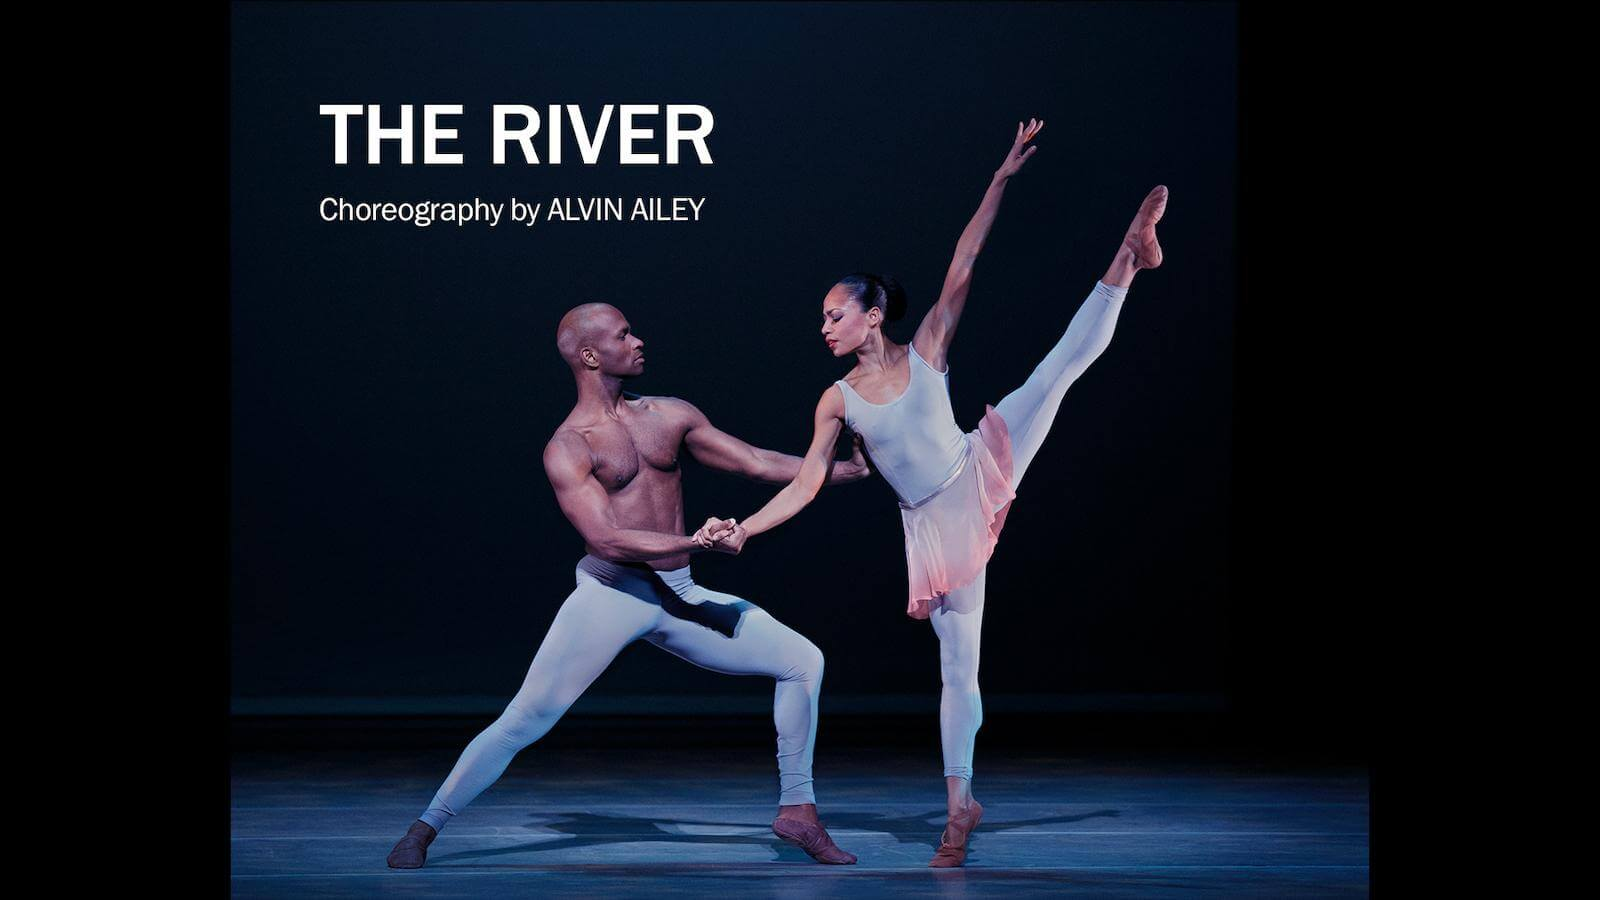 Video excerpt from The River, choreography by Alvin Ailey